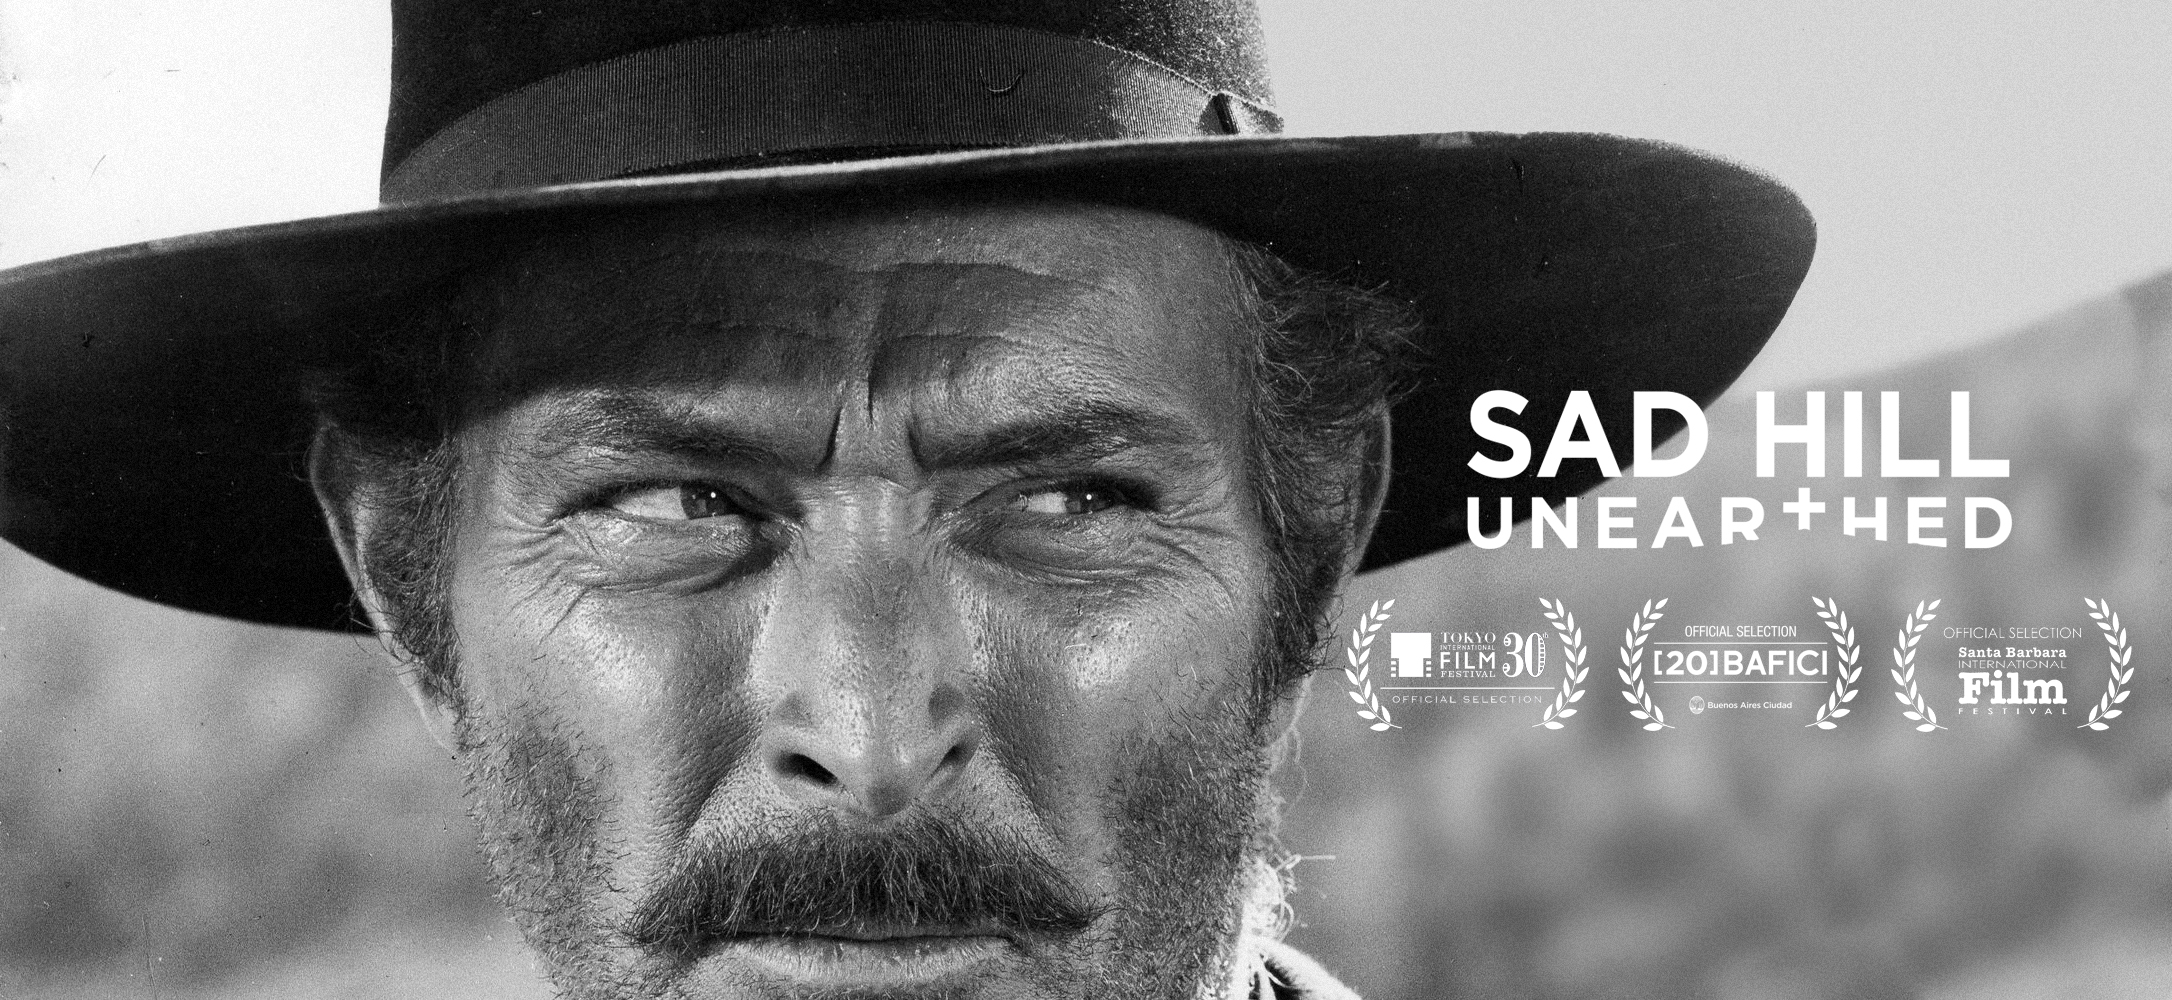 Lee Van Cleef en Sad Hill Unearthed (Desenterrando Sad Hill) de Guillermo de Oliveira